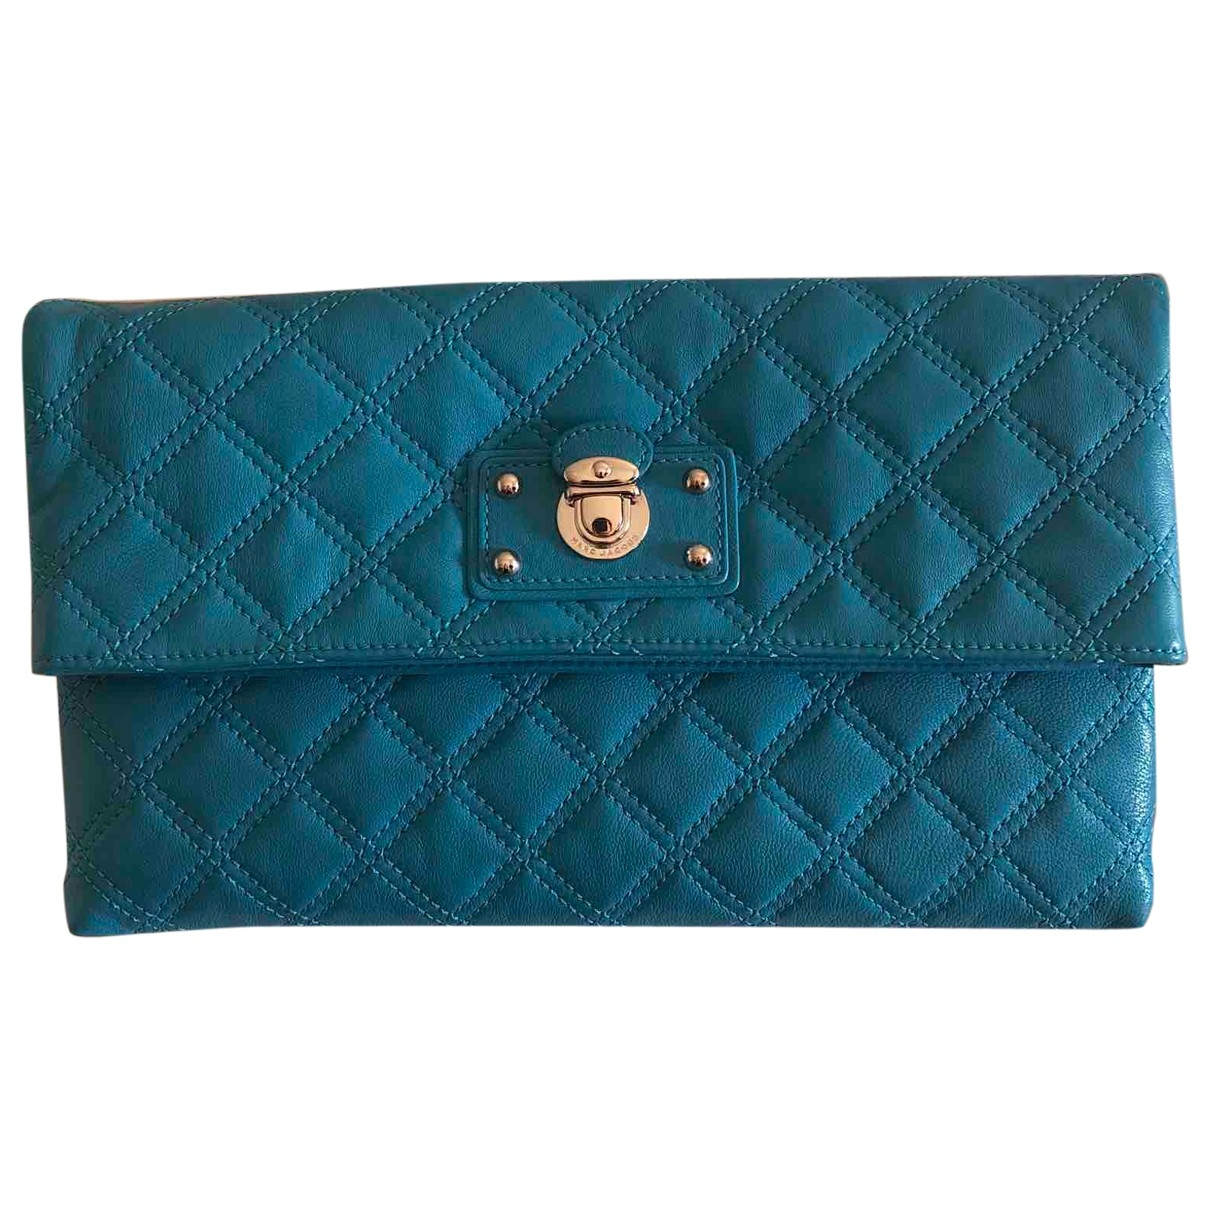 Marc Jacobs \N Turquoise Leather Clutch bag for Women \N